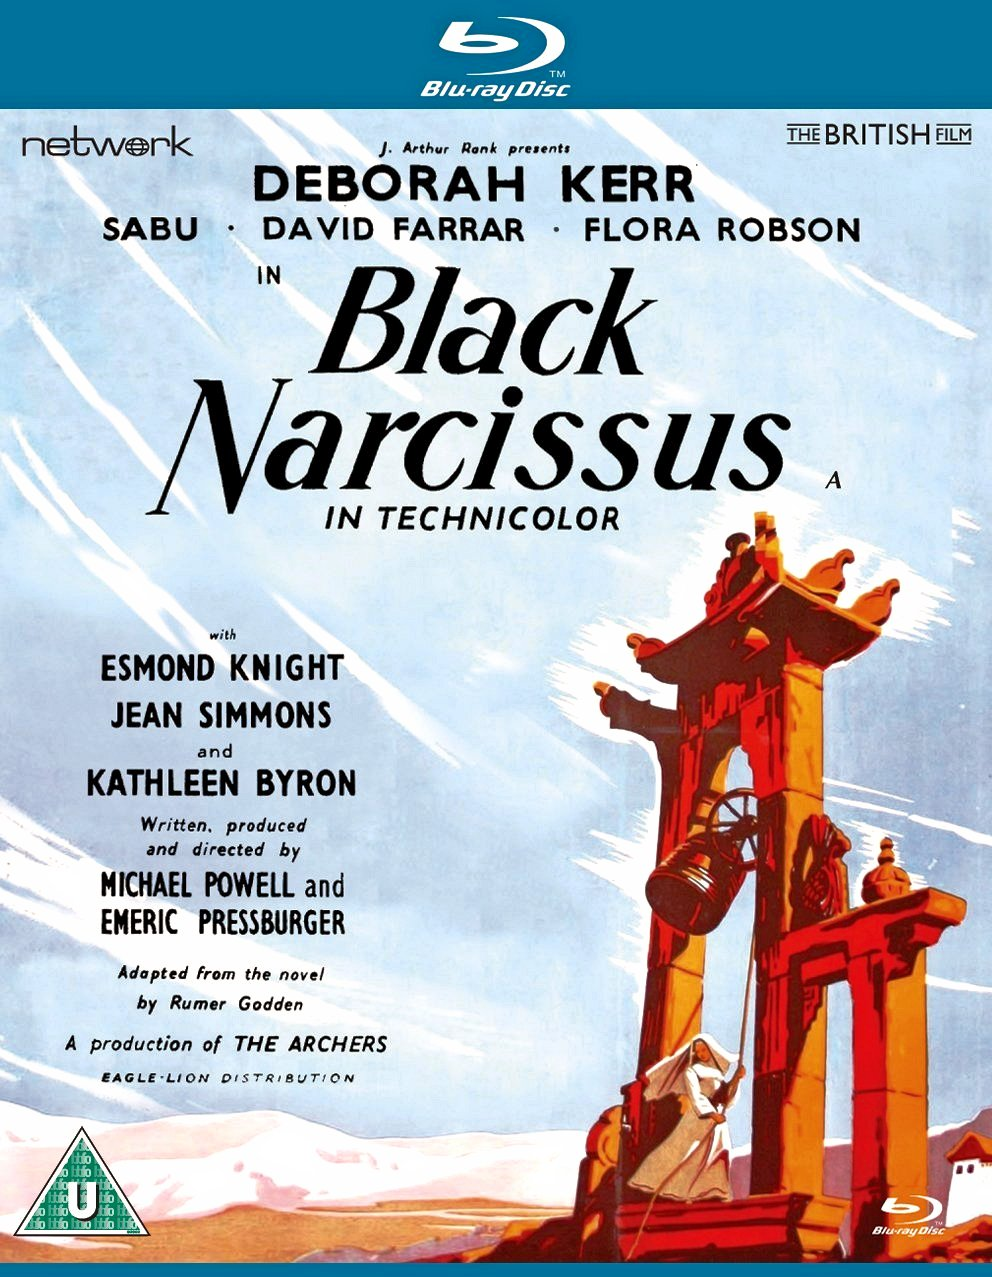 Black Narcissus Blu-ray from Network and The British Film.  Features Deborah Kerr, Sabu, David Farrar and Flora Robson.